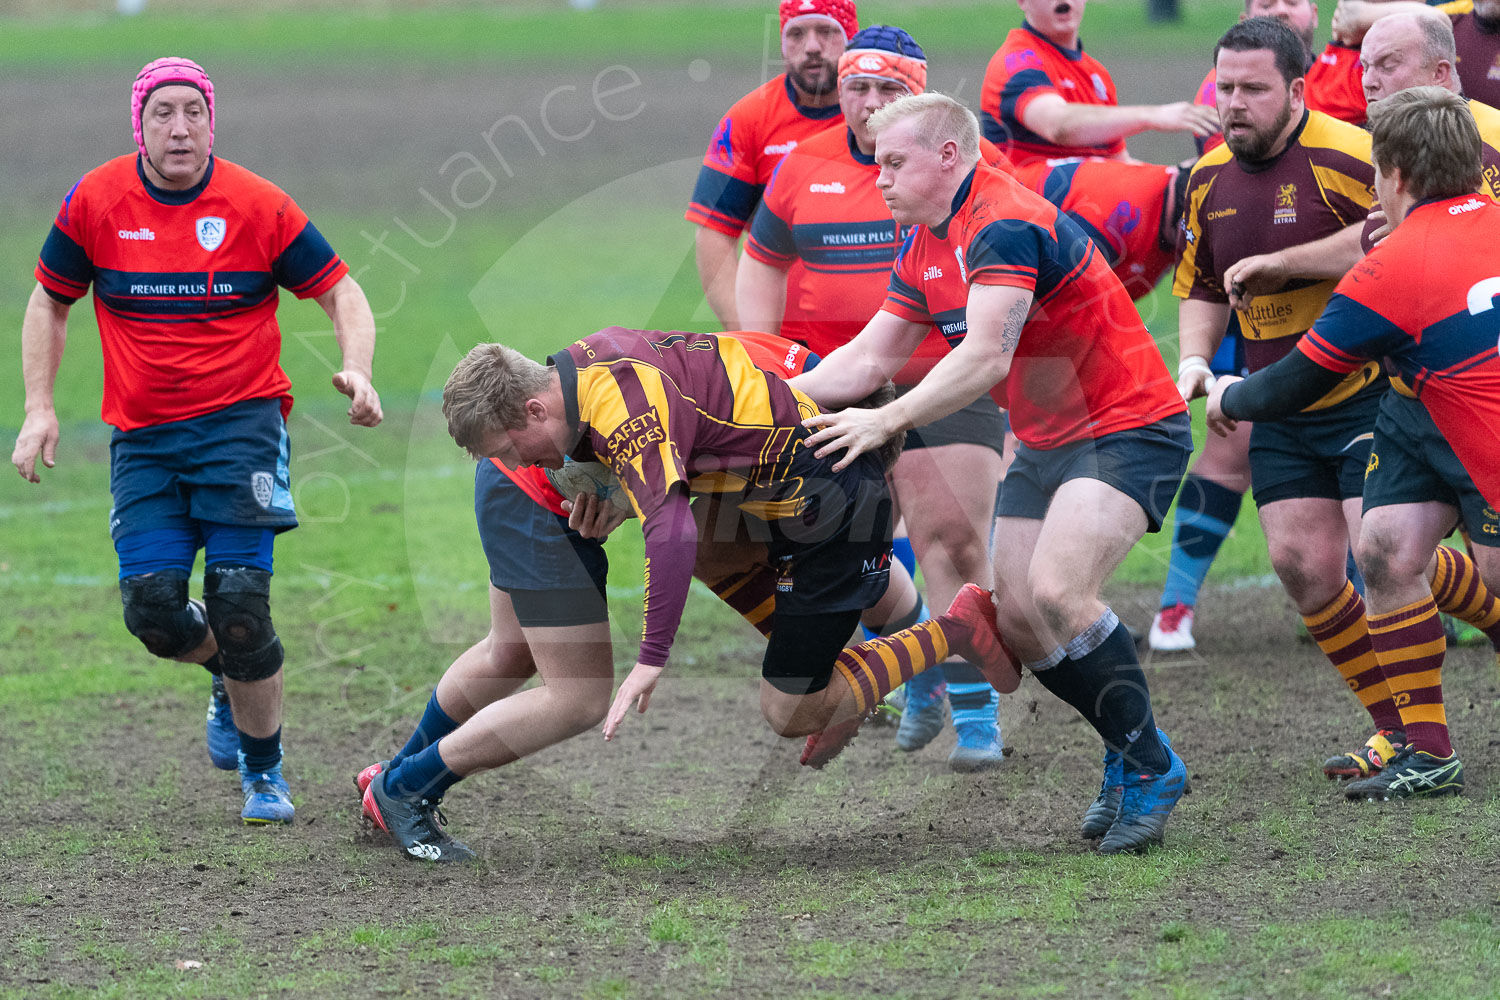 20181027 Amp Extras vs St Neots 2nd XV #2472